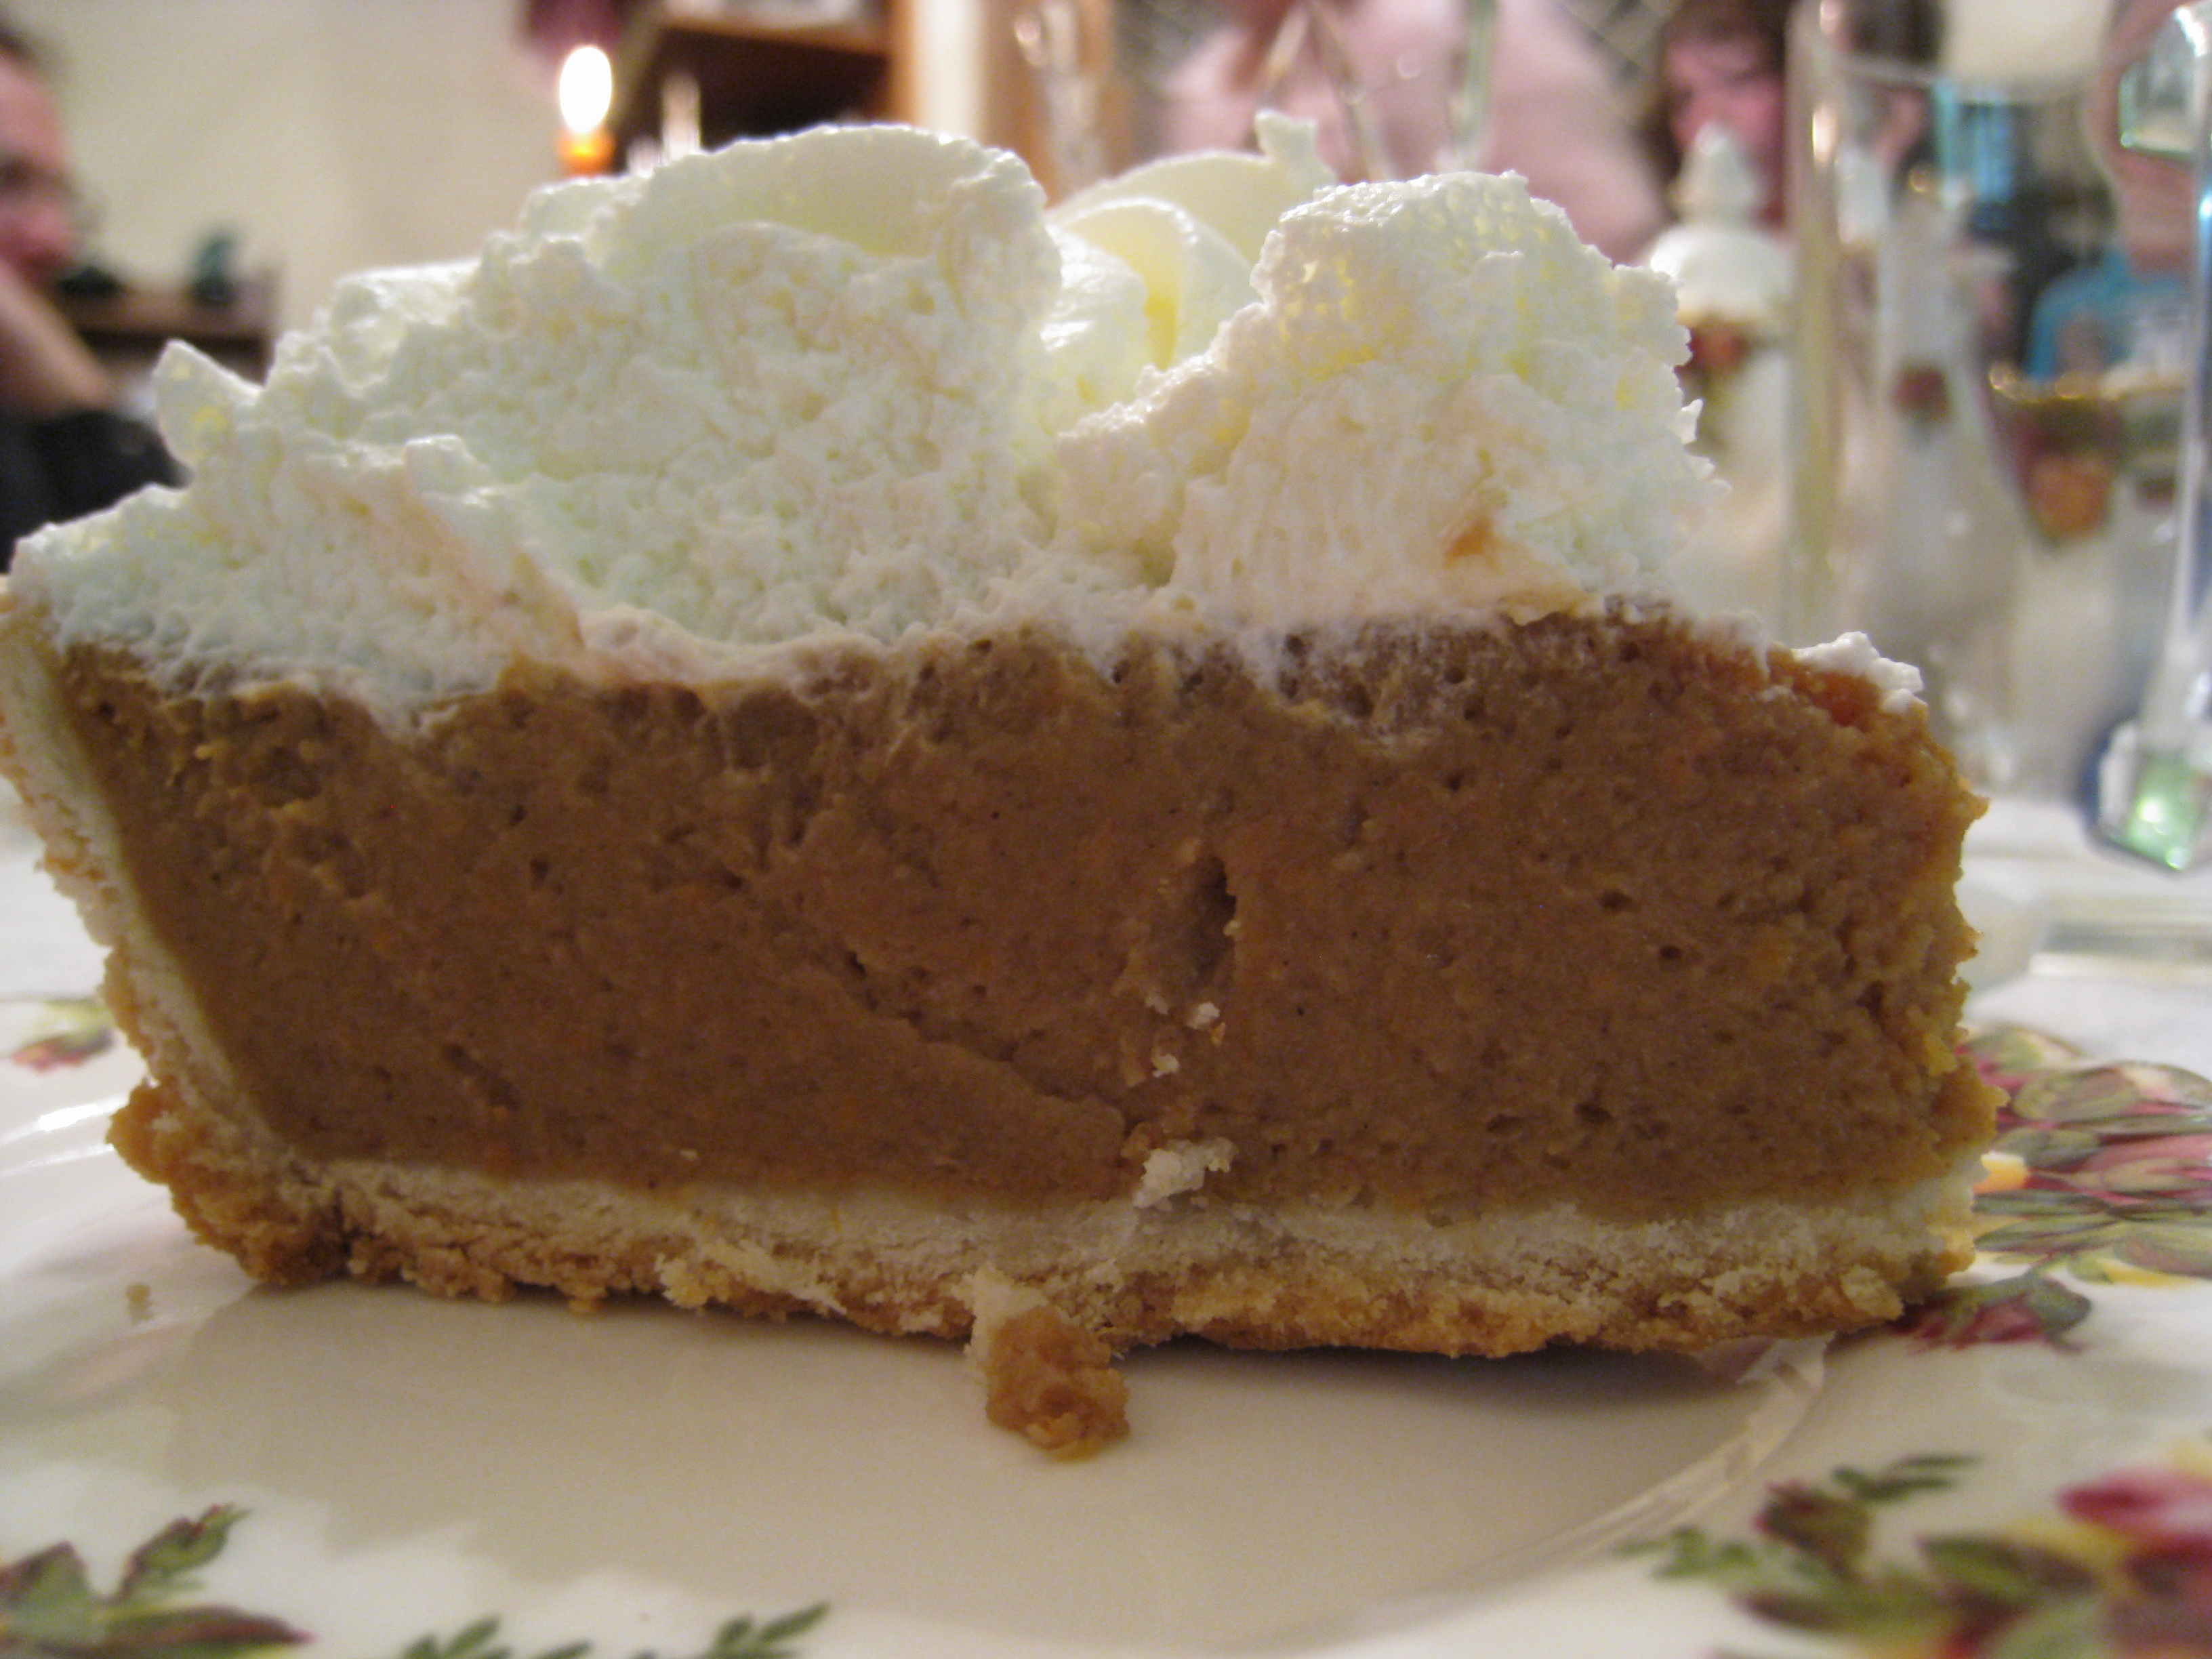 Description Pumpkin pie with whipped cream topping, October 2008.jpg